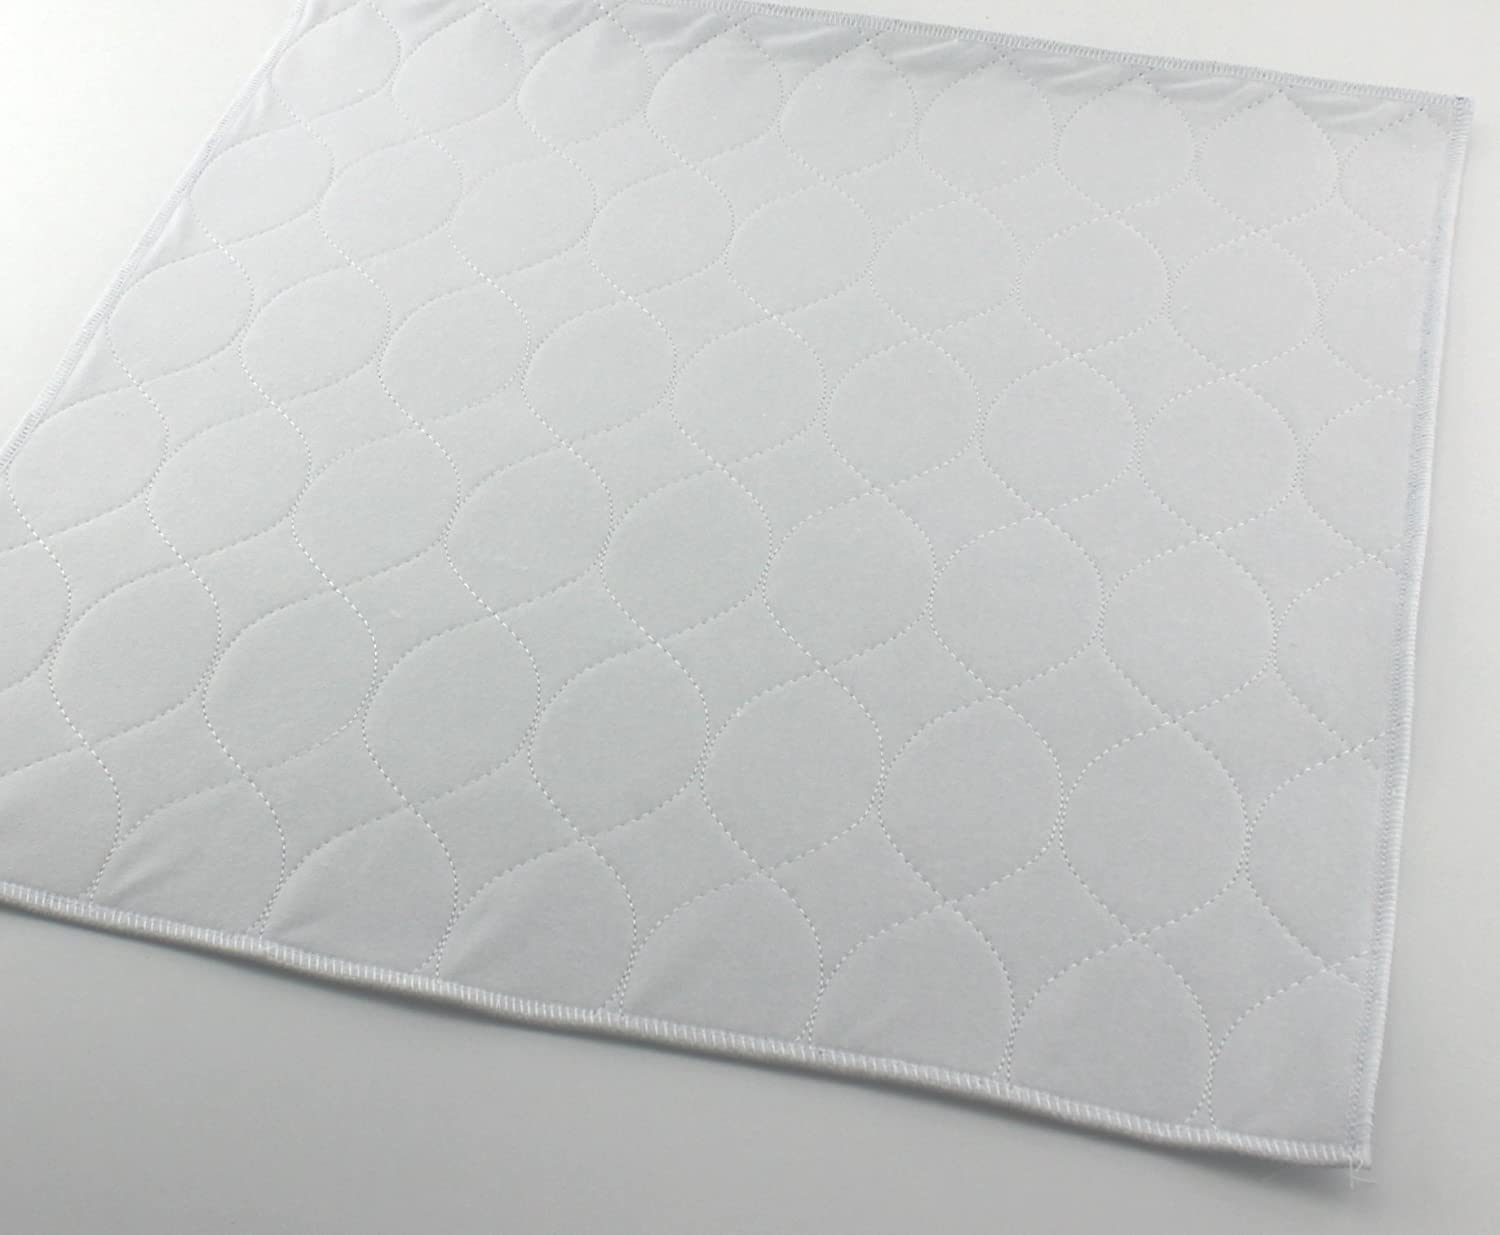 Pile of Pillows Incontinence Soaker Pads-36x36-Inch-2 Pack 6525